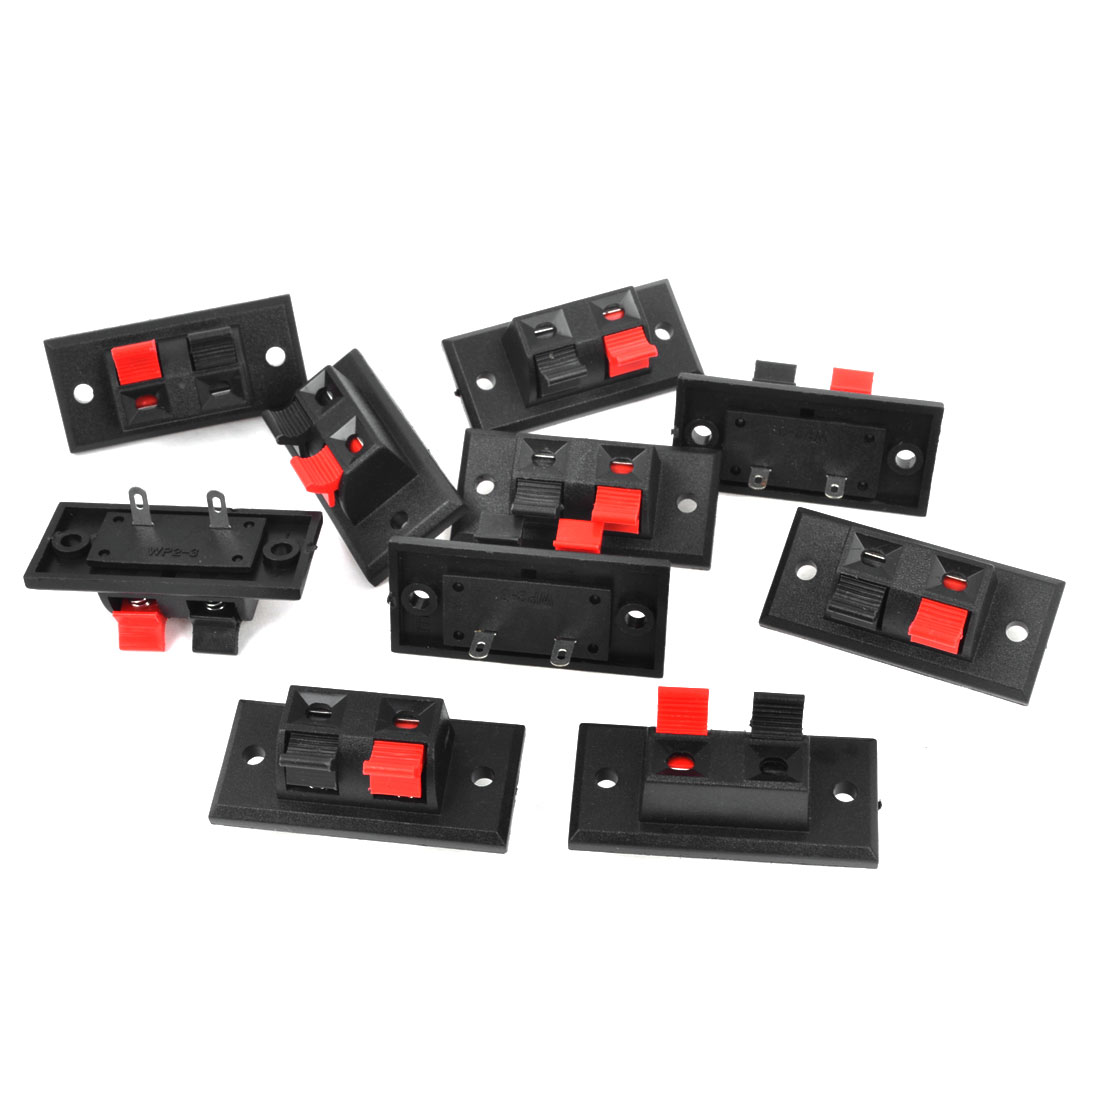 10Pcs 2 Way Large Stereo Speaker Plate Terminal Strip Push Release Connector Block